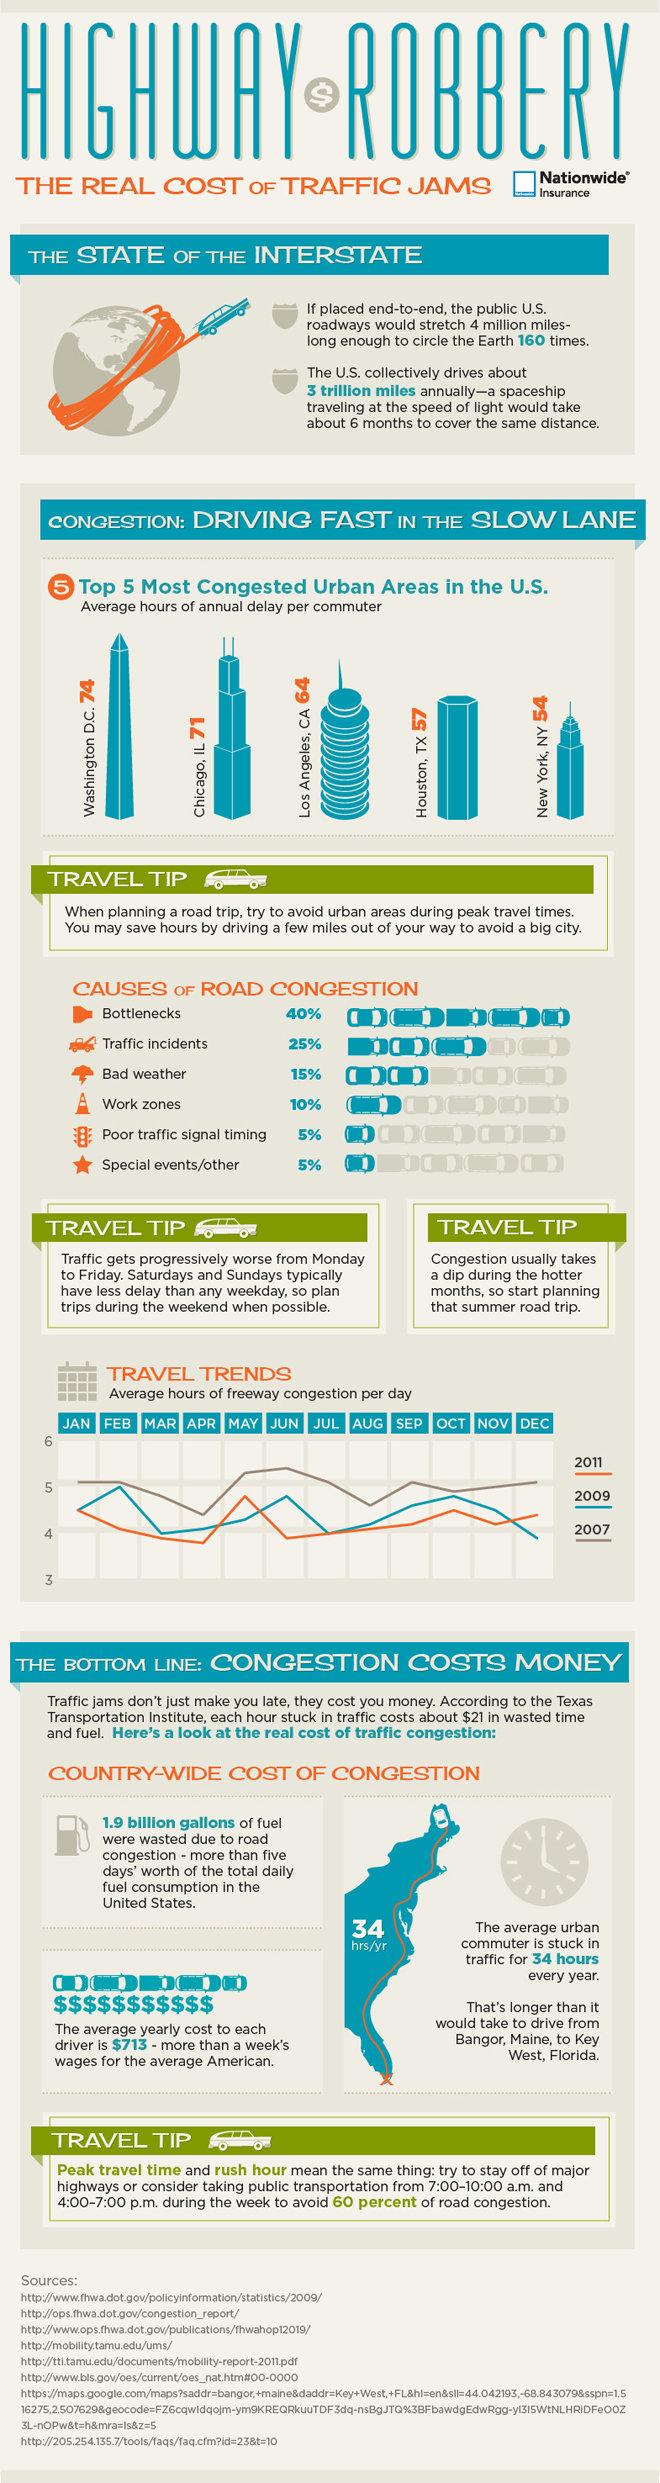 highway robbery the real cost of traffic jams #infographic